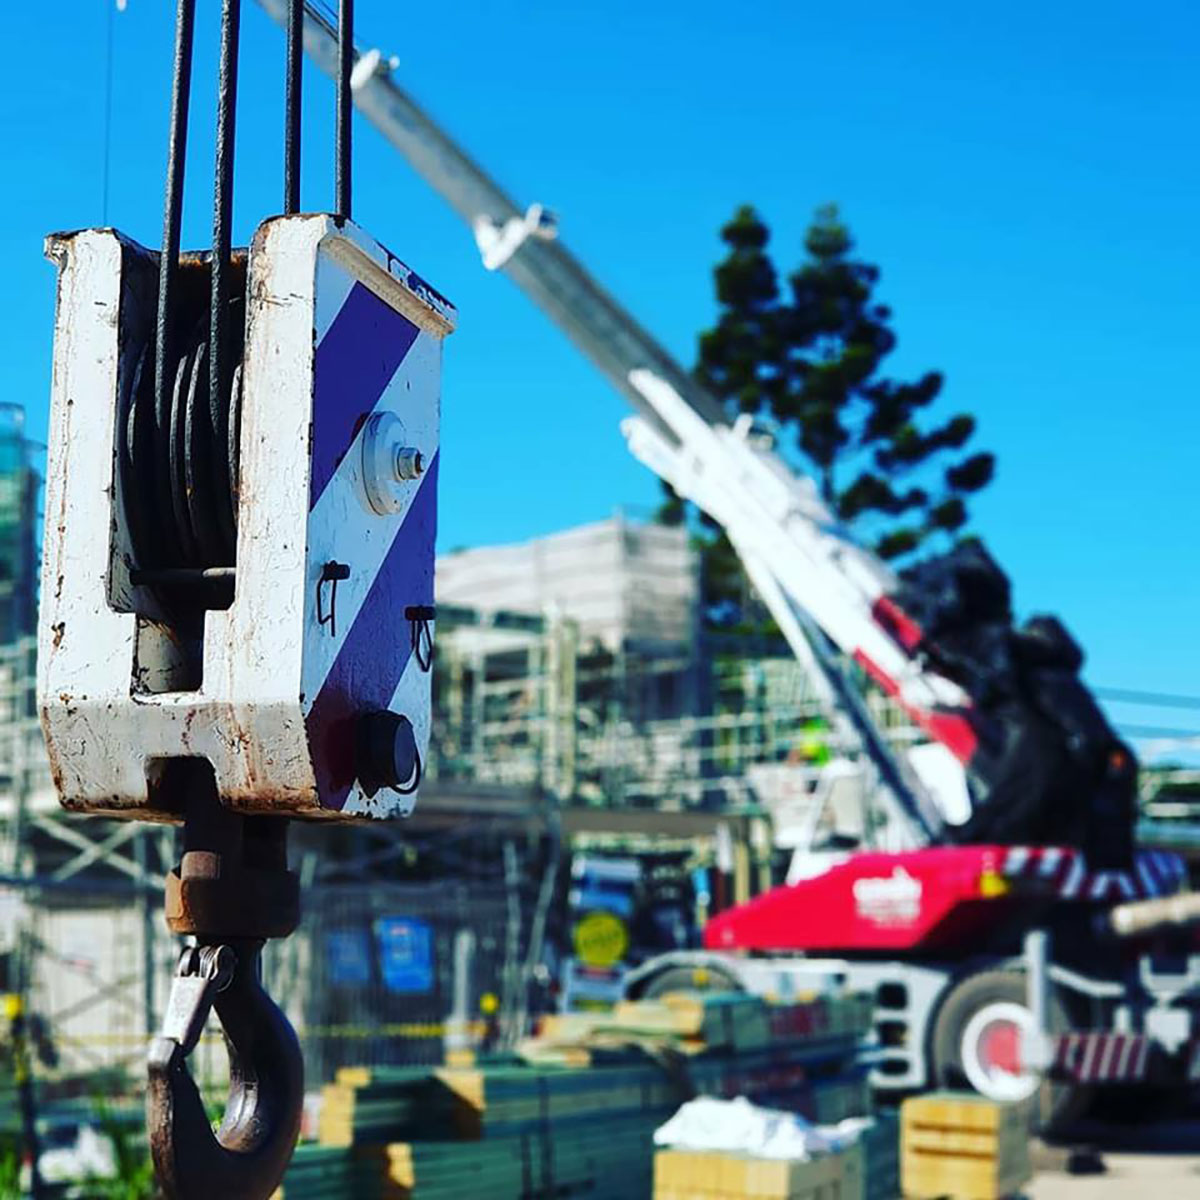 Origin-Cranes-close-up-crane-hook-Sunshine-Coast